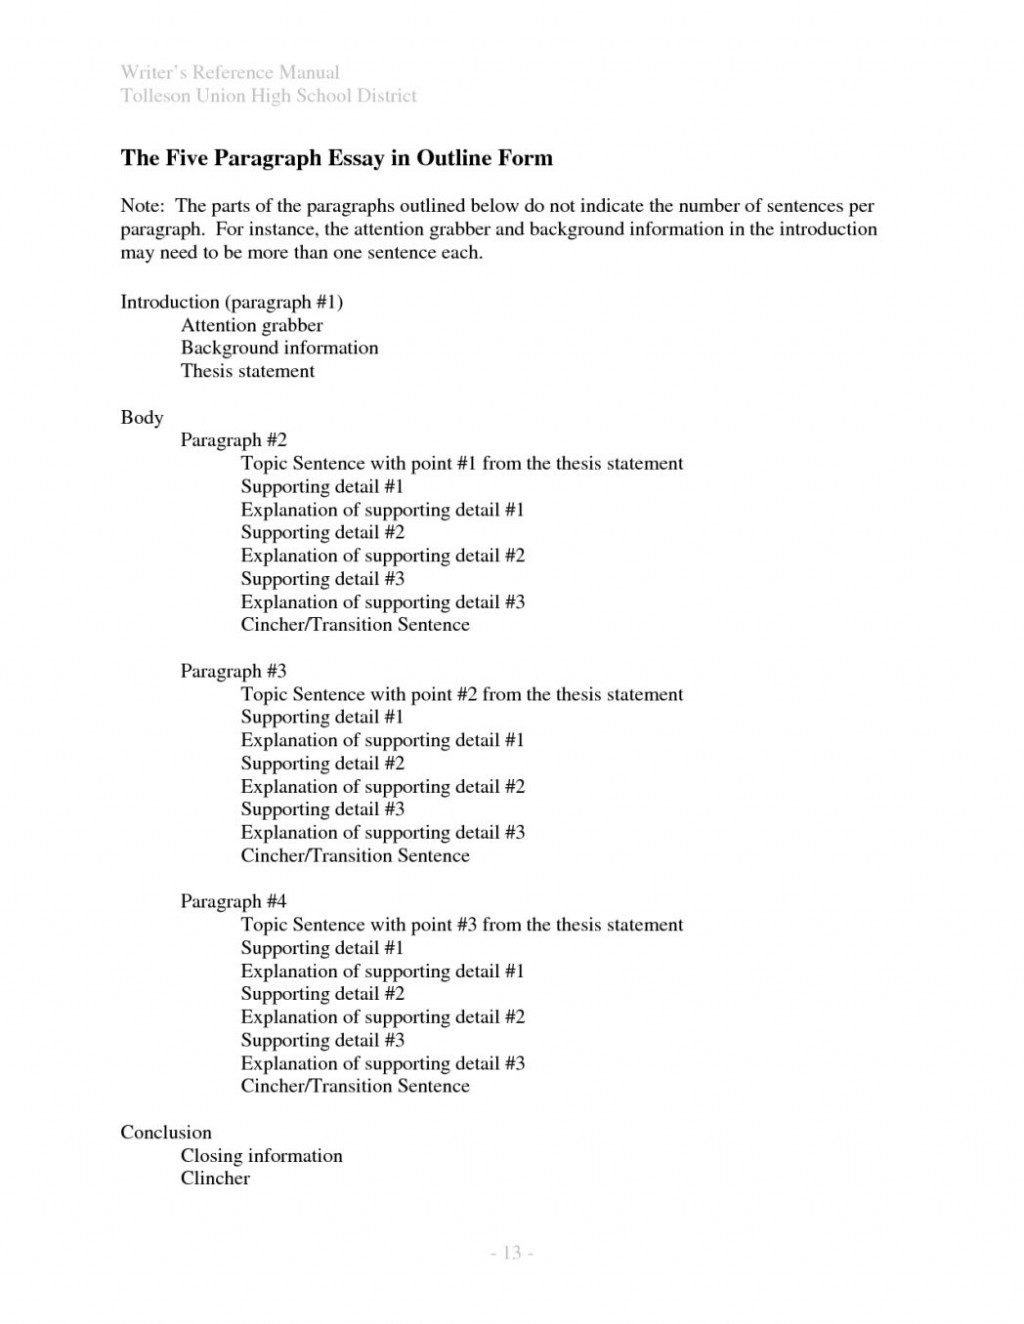 014 Interesting Topics For Research Paper High School An Outline Argumentative Essay Abortion Frightening A Students Large